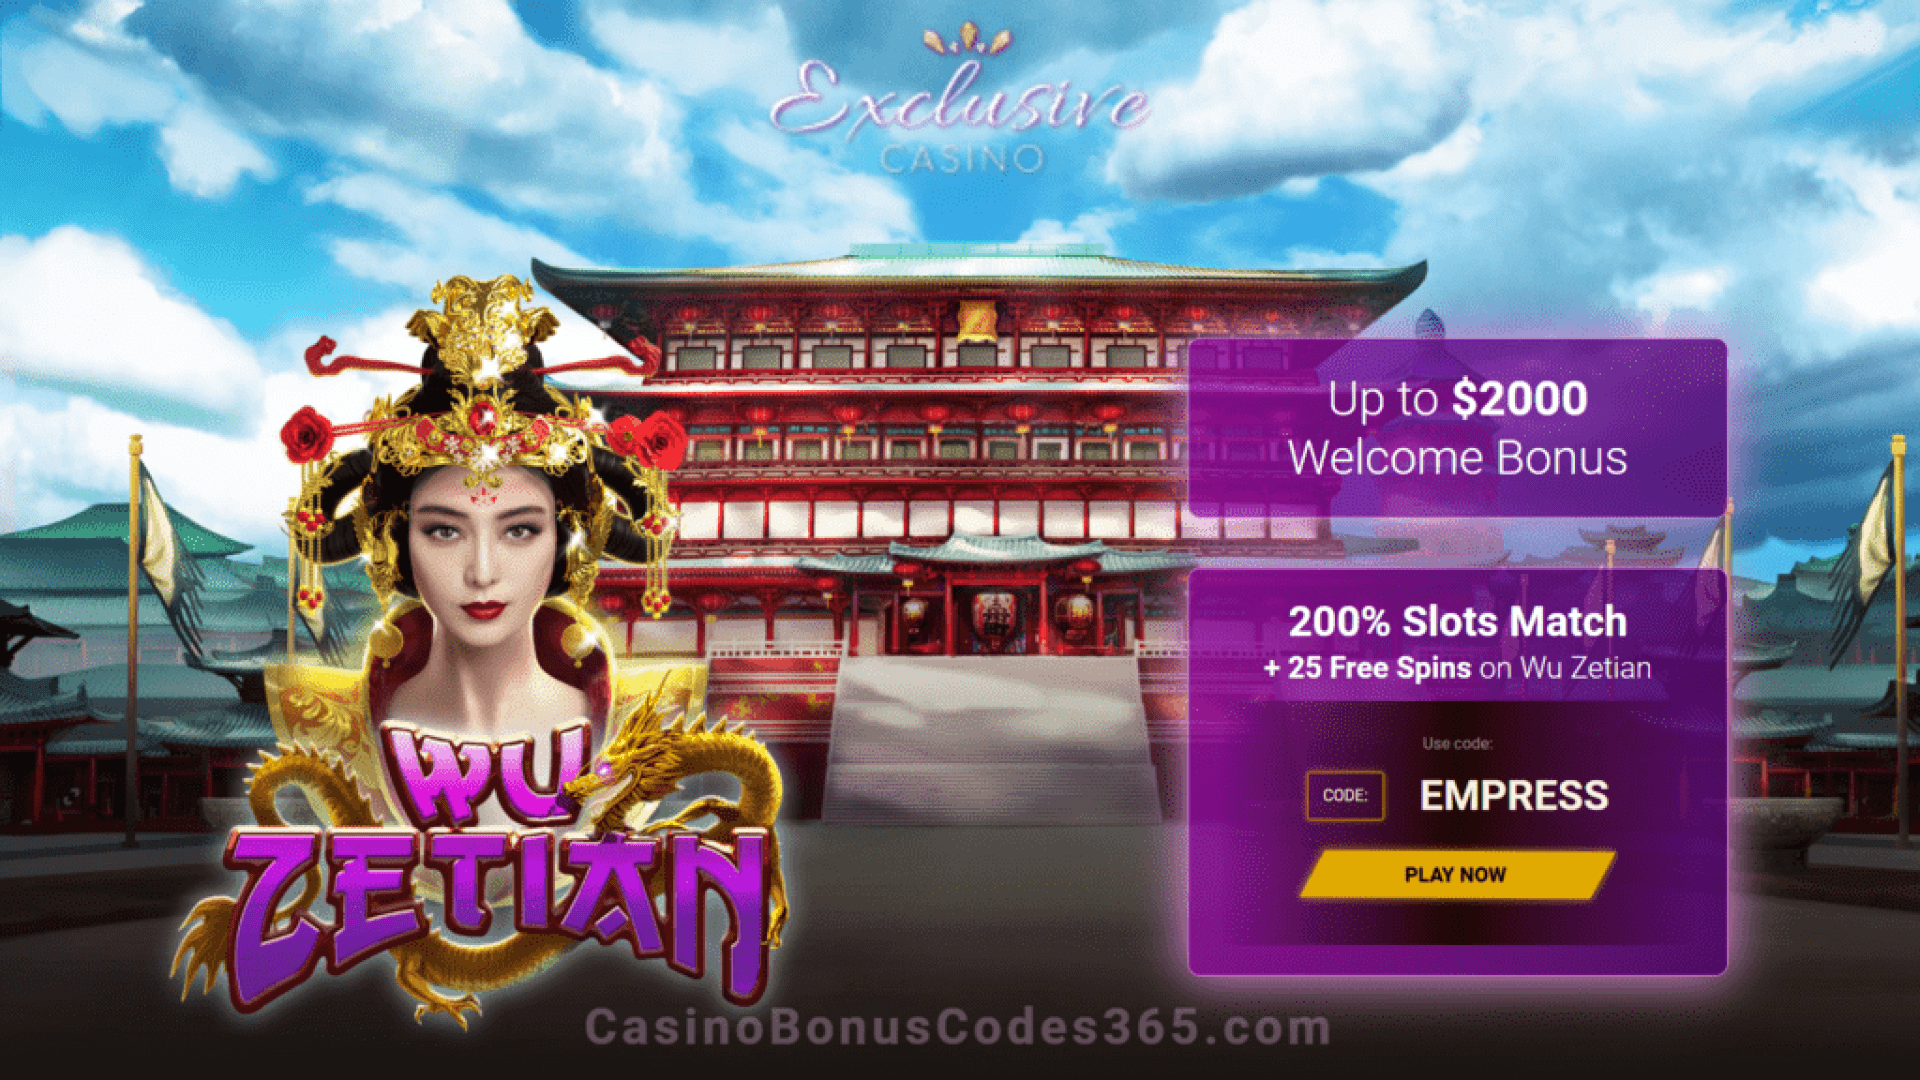 Exclusive Casino 200% Match Bonus plus 25 FREE RTG Wu Zetian Spins Welcome Pack